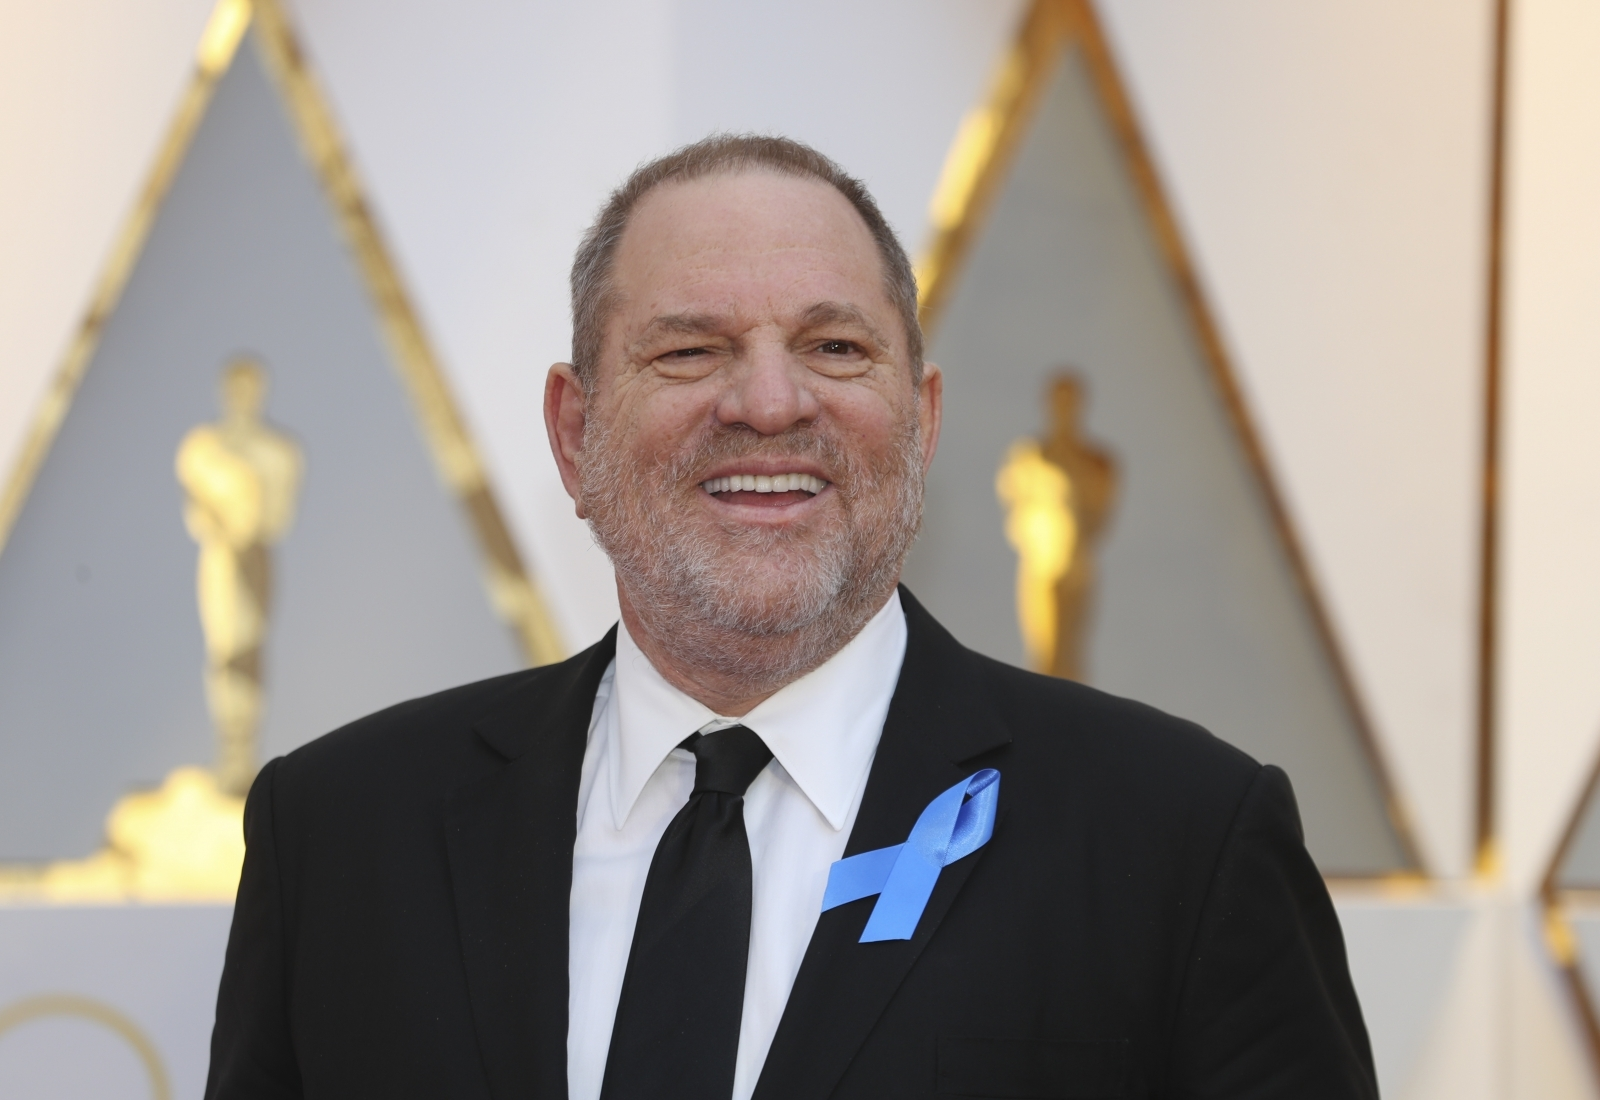 Harvey Weinstein Lawyers Battling NY Times, New Yorker Over Potentially Explosive Stories